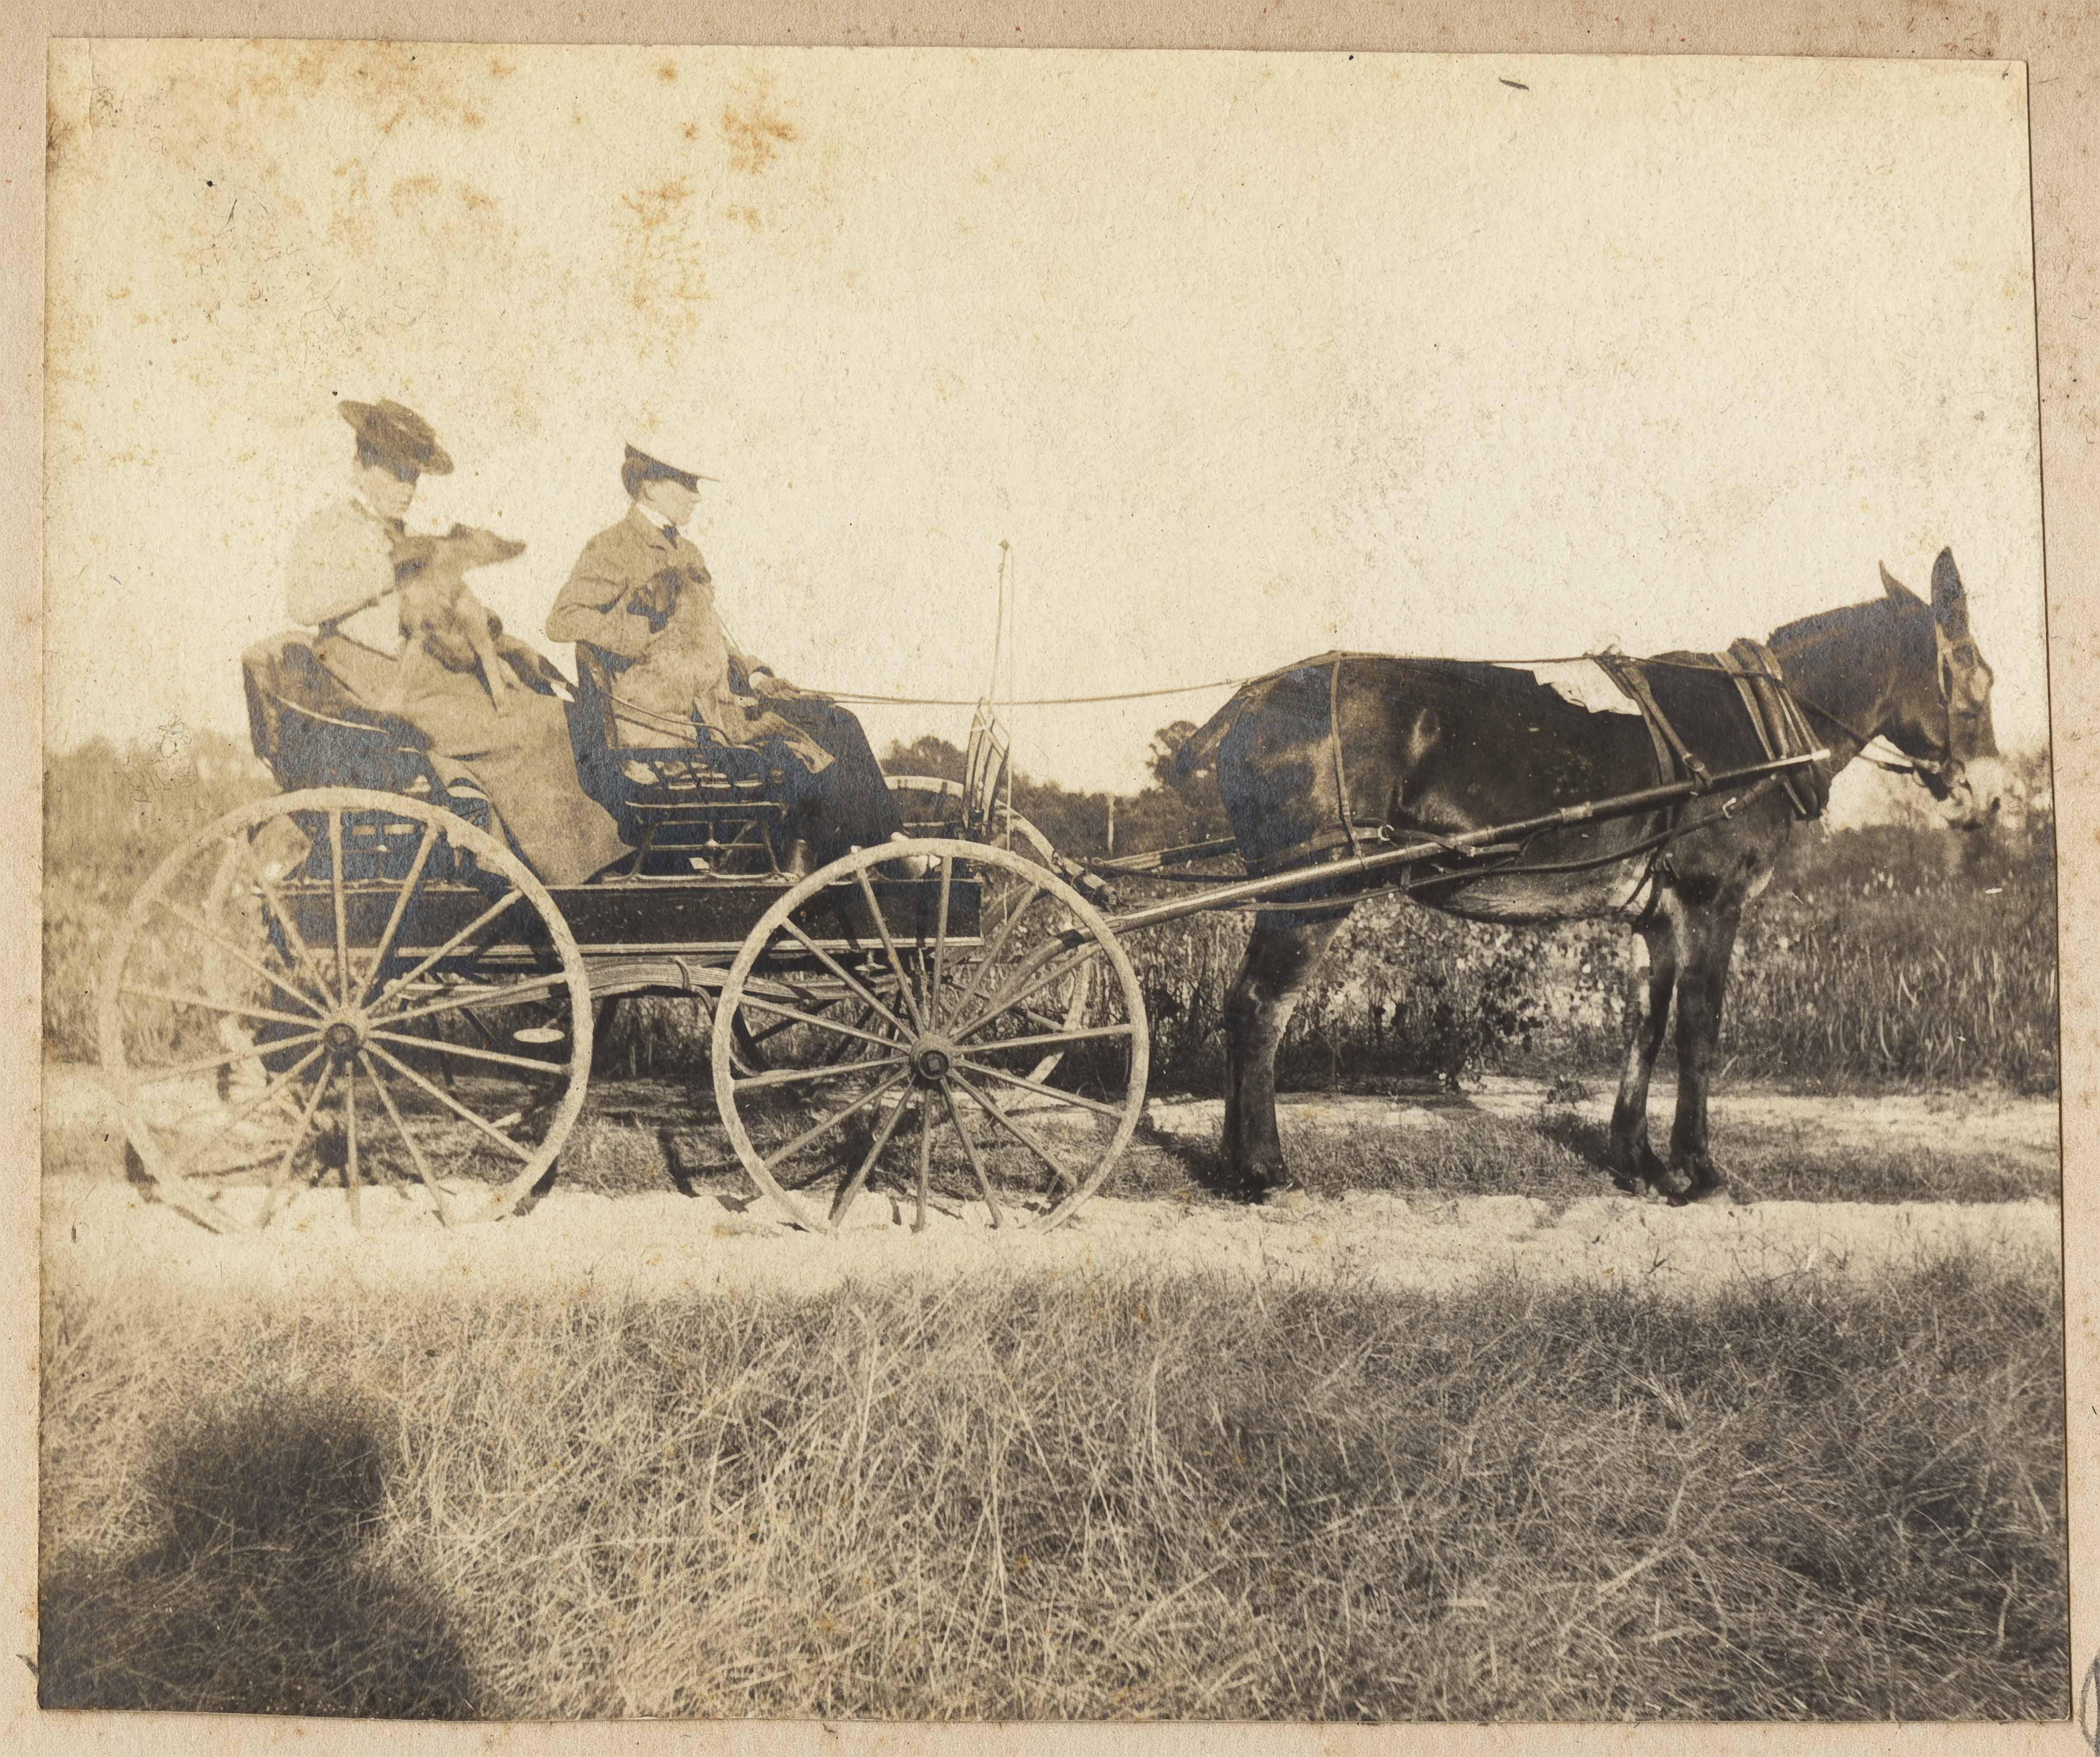 Two women and dog in wagon